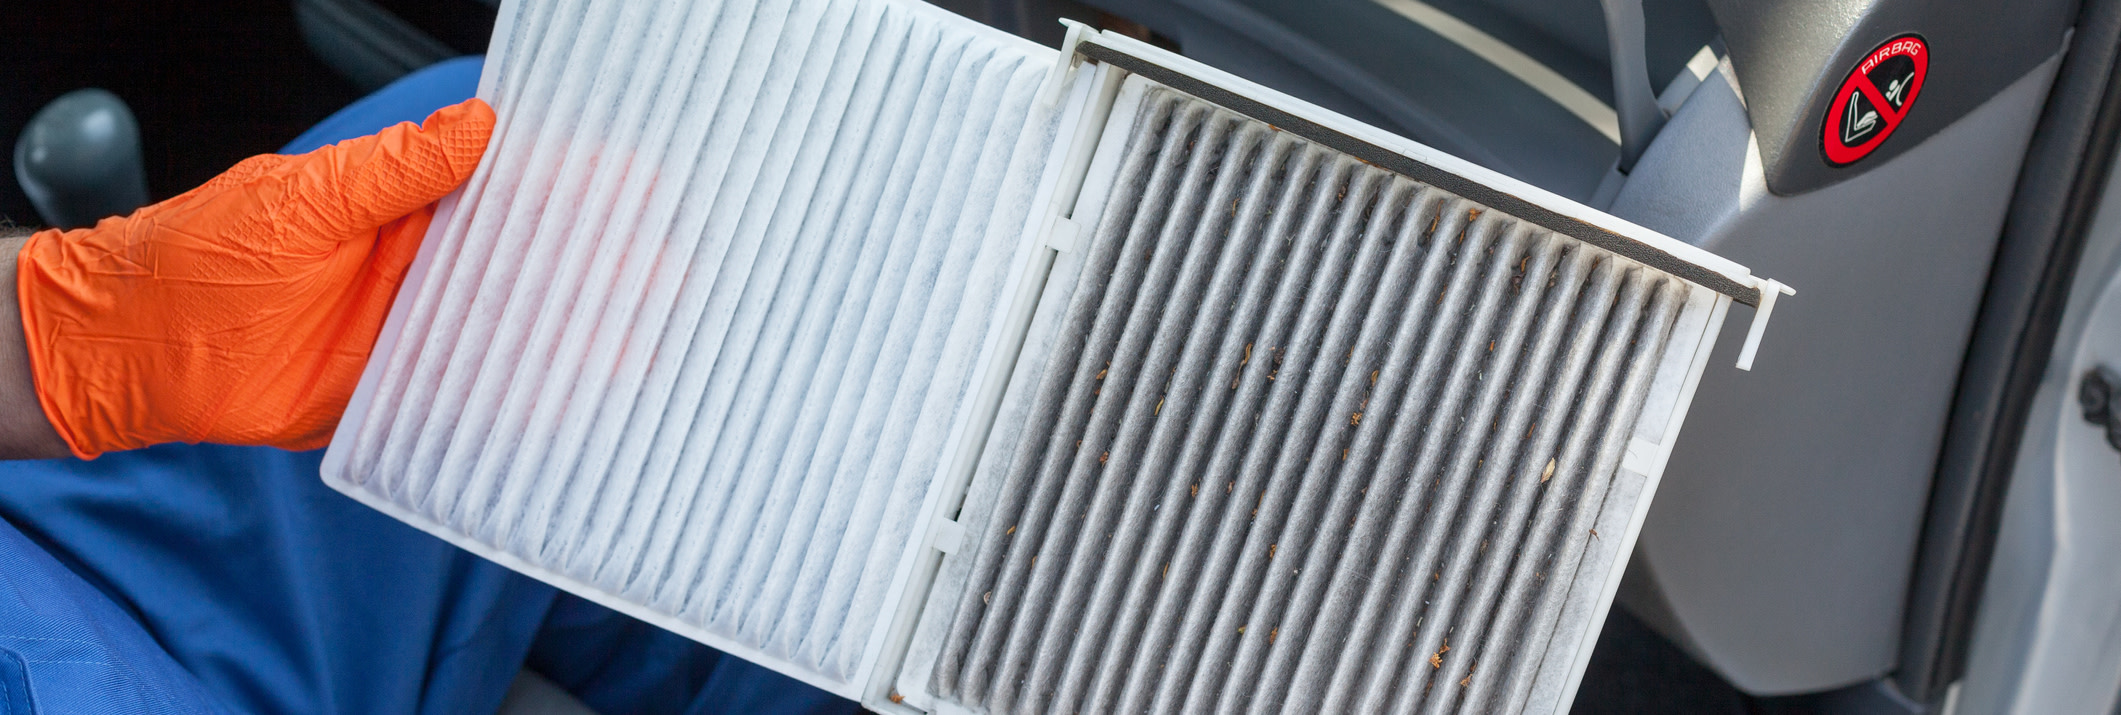 Cabin Air Filter Replacement Service near Boerne, TX